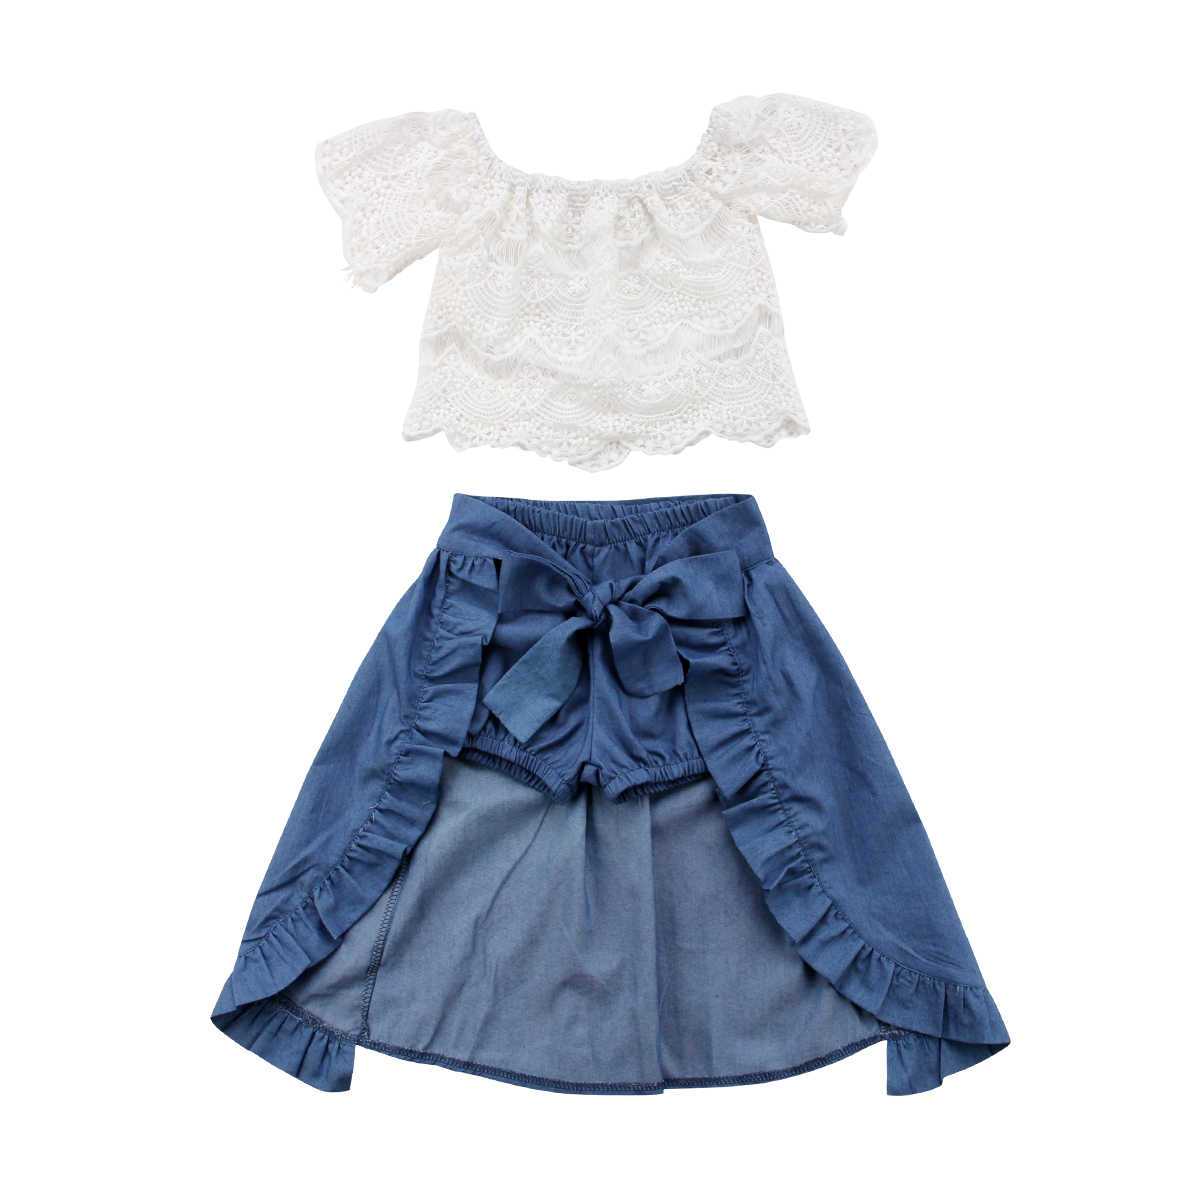 Boutique Kids Baby Girls Lace Off Shoulder Top +Shorts Skirt 2PCS Clothes Outfits Size 2-6T